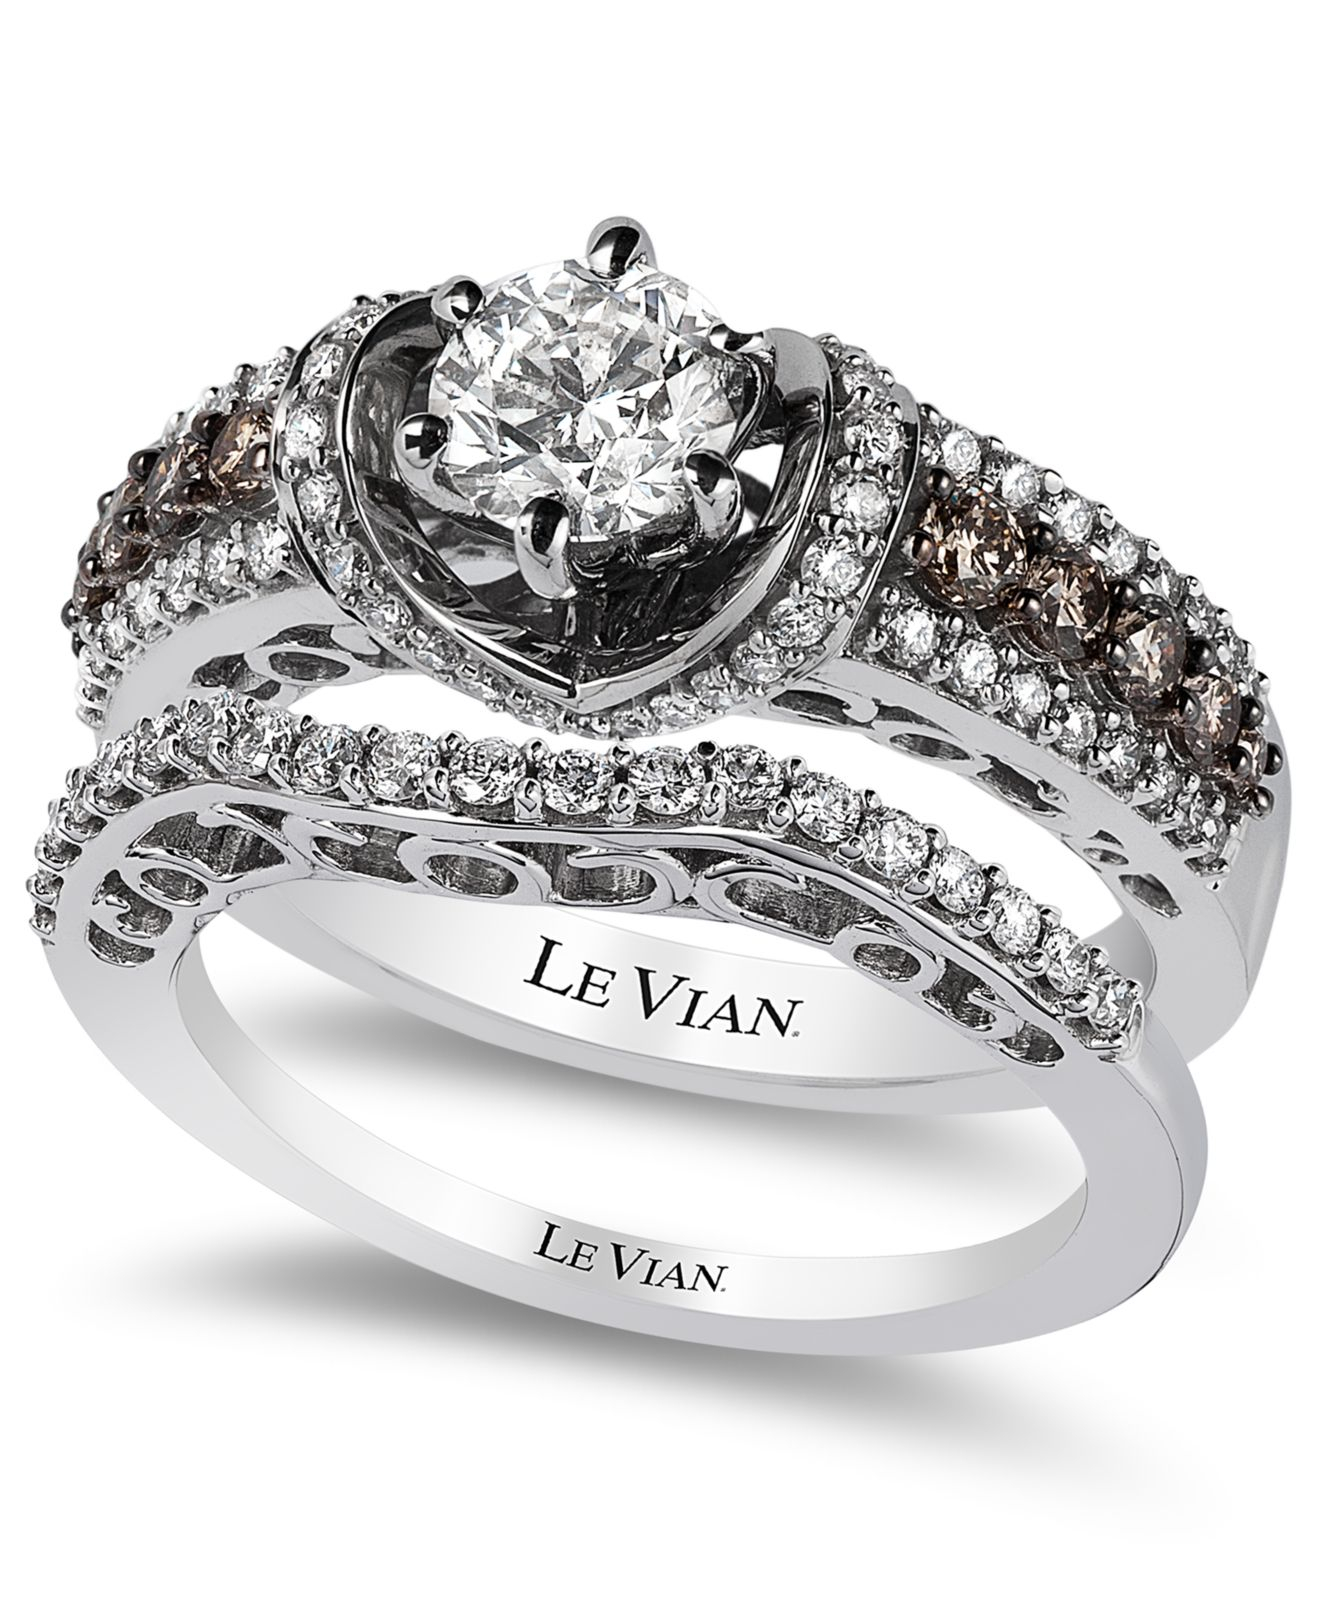 6c16973eb555c3 Gallery. Previously sold at: Macy's · Women's Engagement Rings Women's Le  Vian Chocolate Diamond Jewelry ...